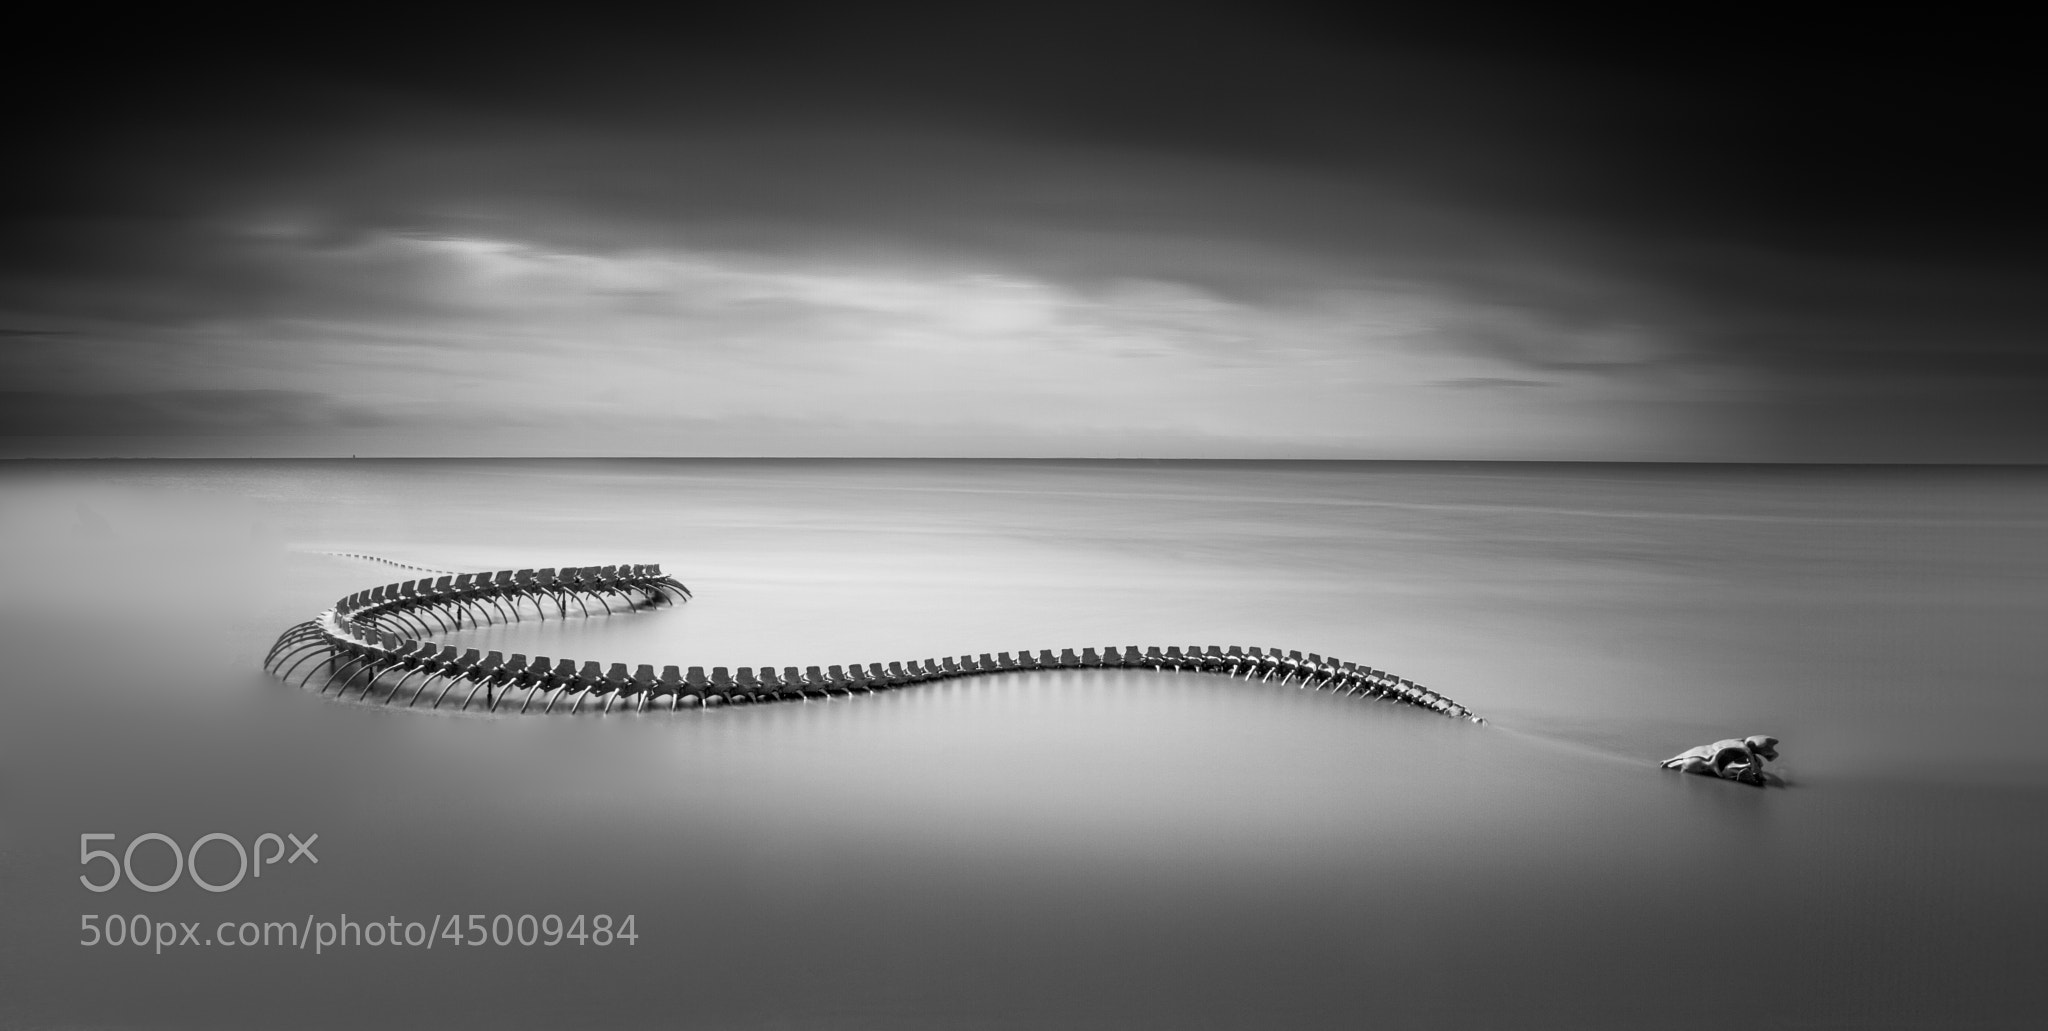 Photograph Serpent d'Océan by Emmanuel LE GUELLEC on 500px